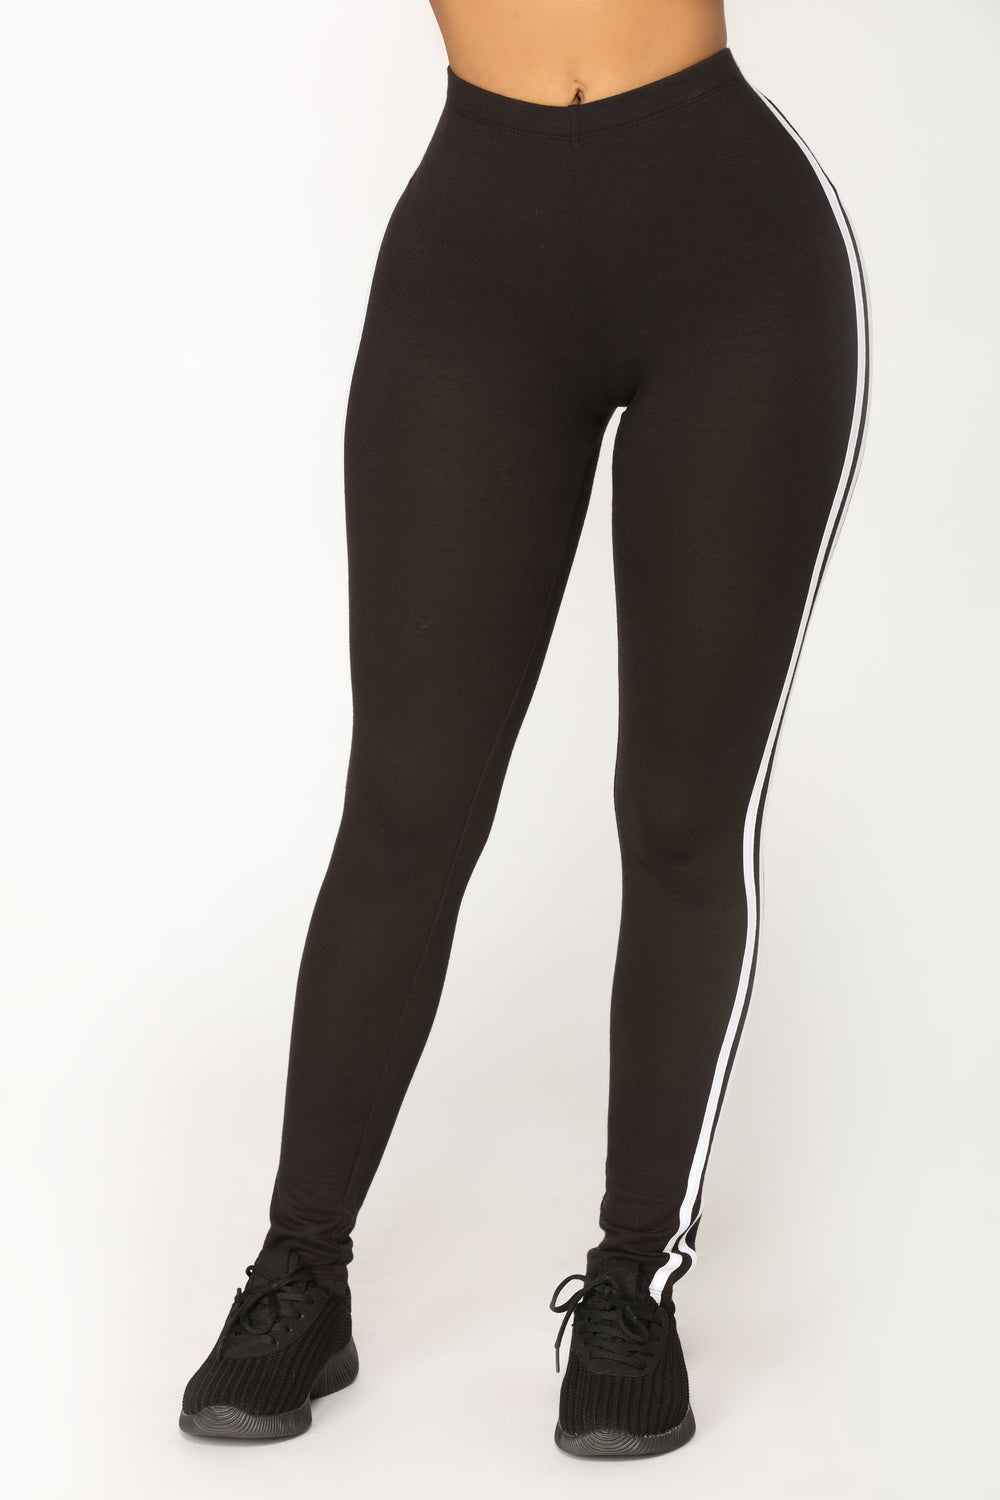 Kimmy Lounge Leggings - Black